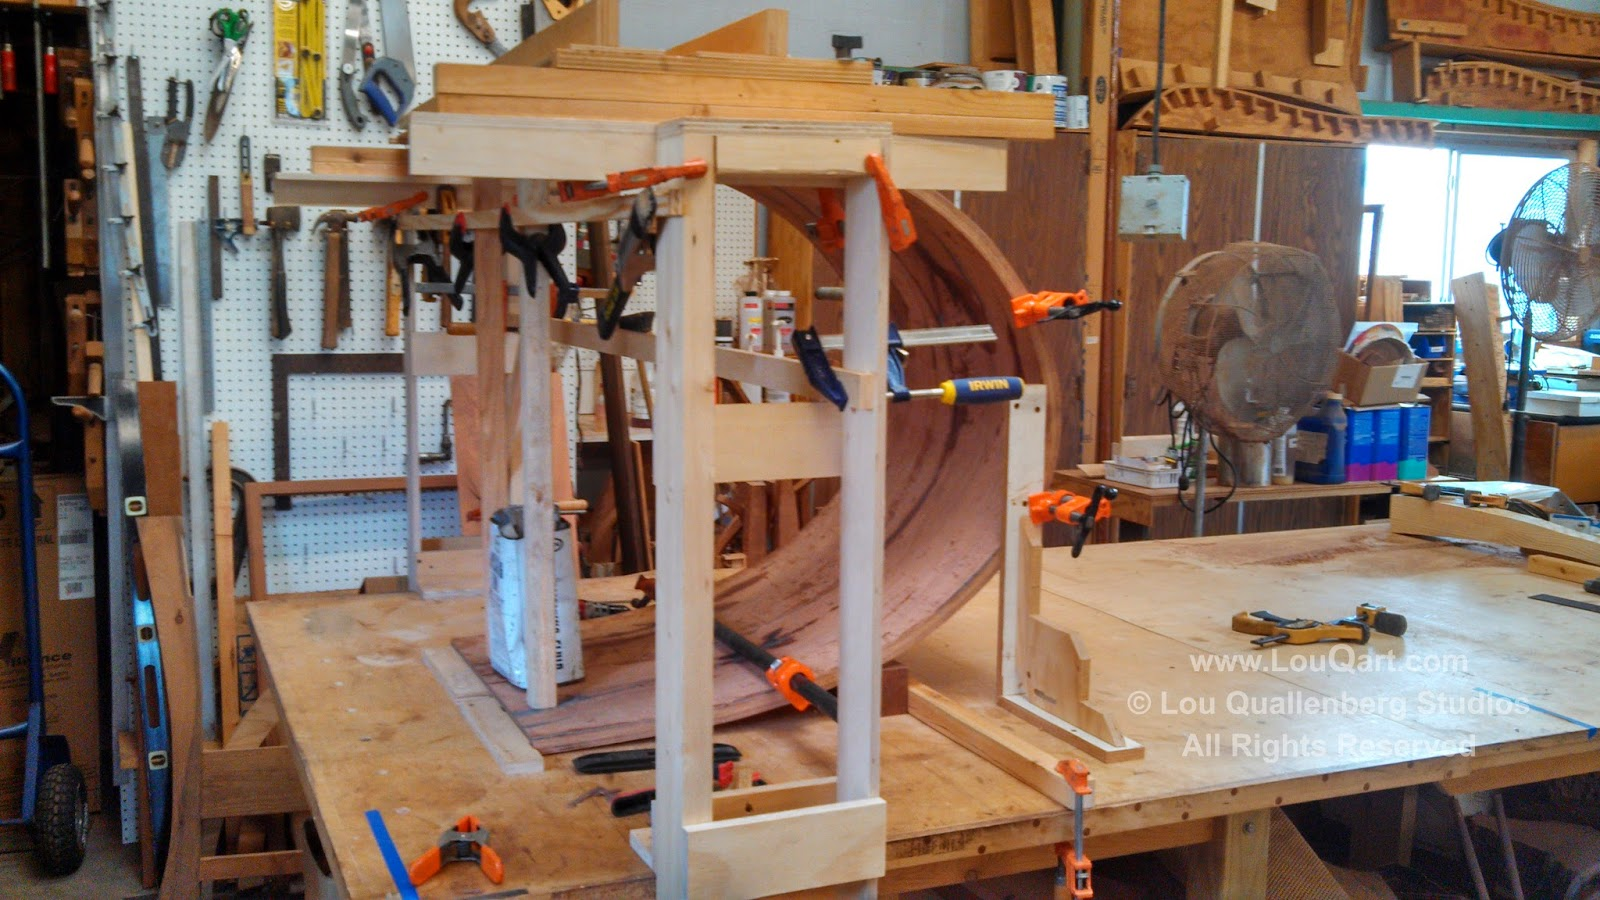 Base Jig for laminated mesquite curves by Lou Qualleneberg